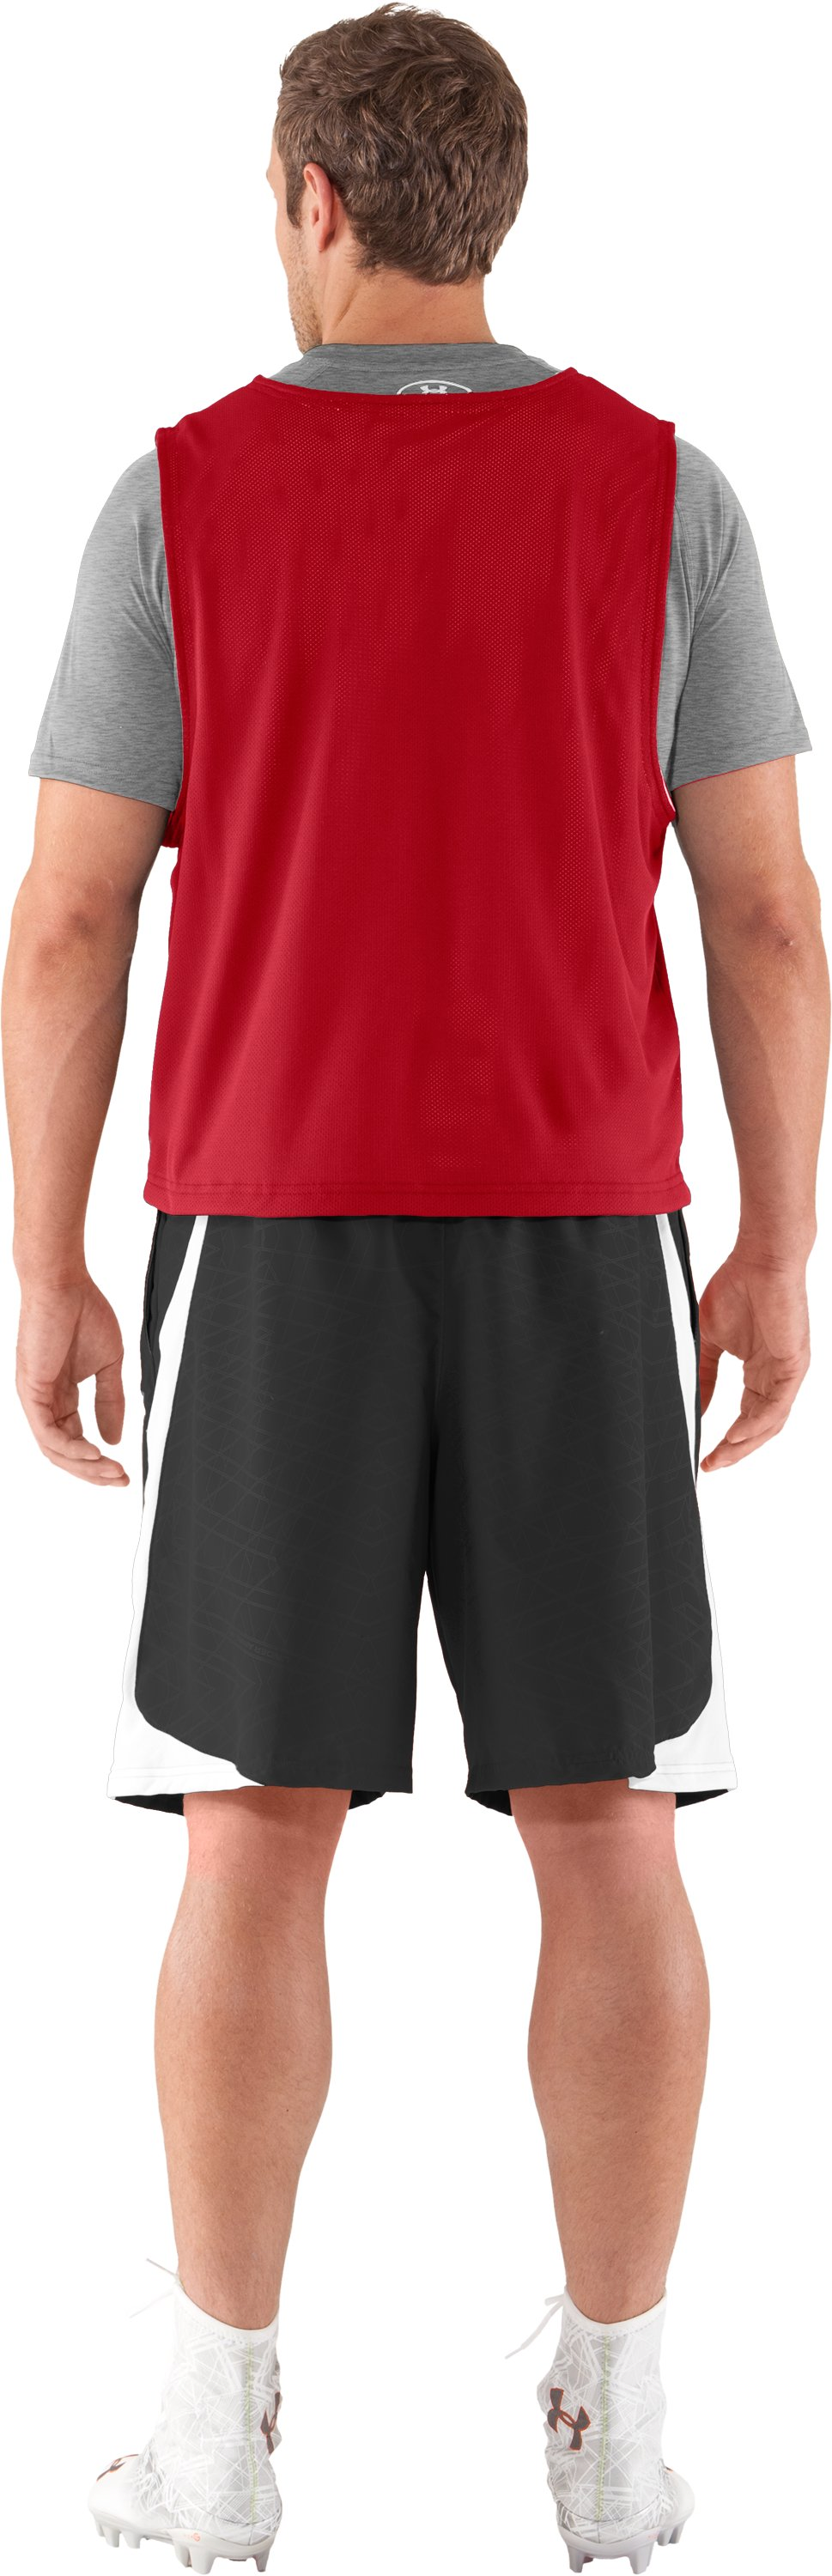 Men's Practice Jersey, Red, Back